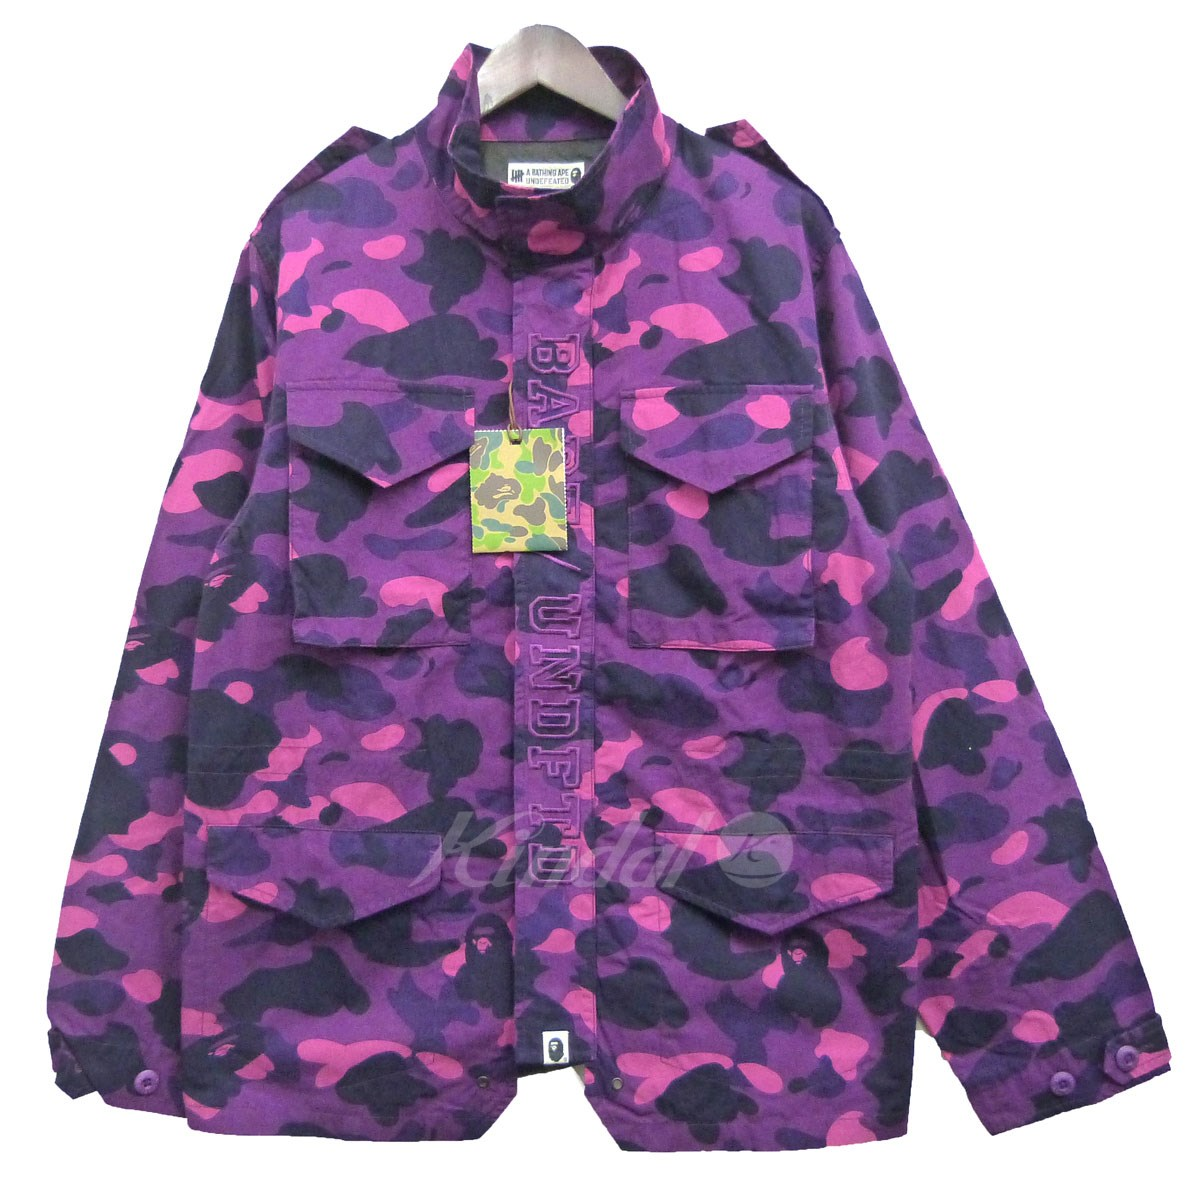 【中古】A BATHING APE×UNDEFEATED 18SS「COLOR CAMO M-65」カラーカモM-65ジャケット 【送料無料】 【094229】 【KIND1550】